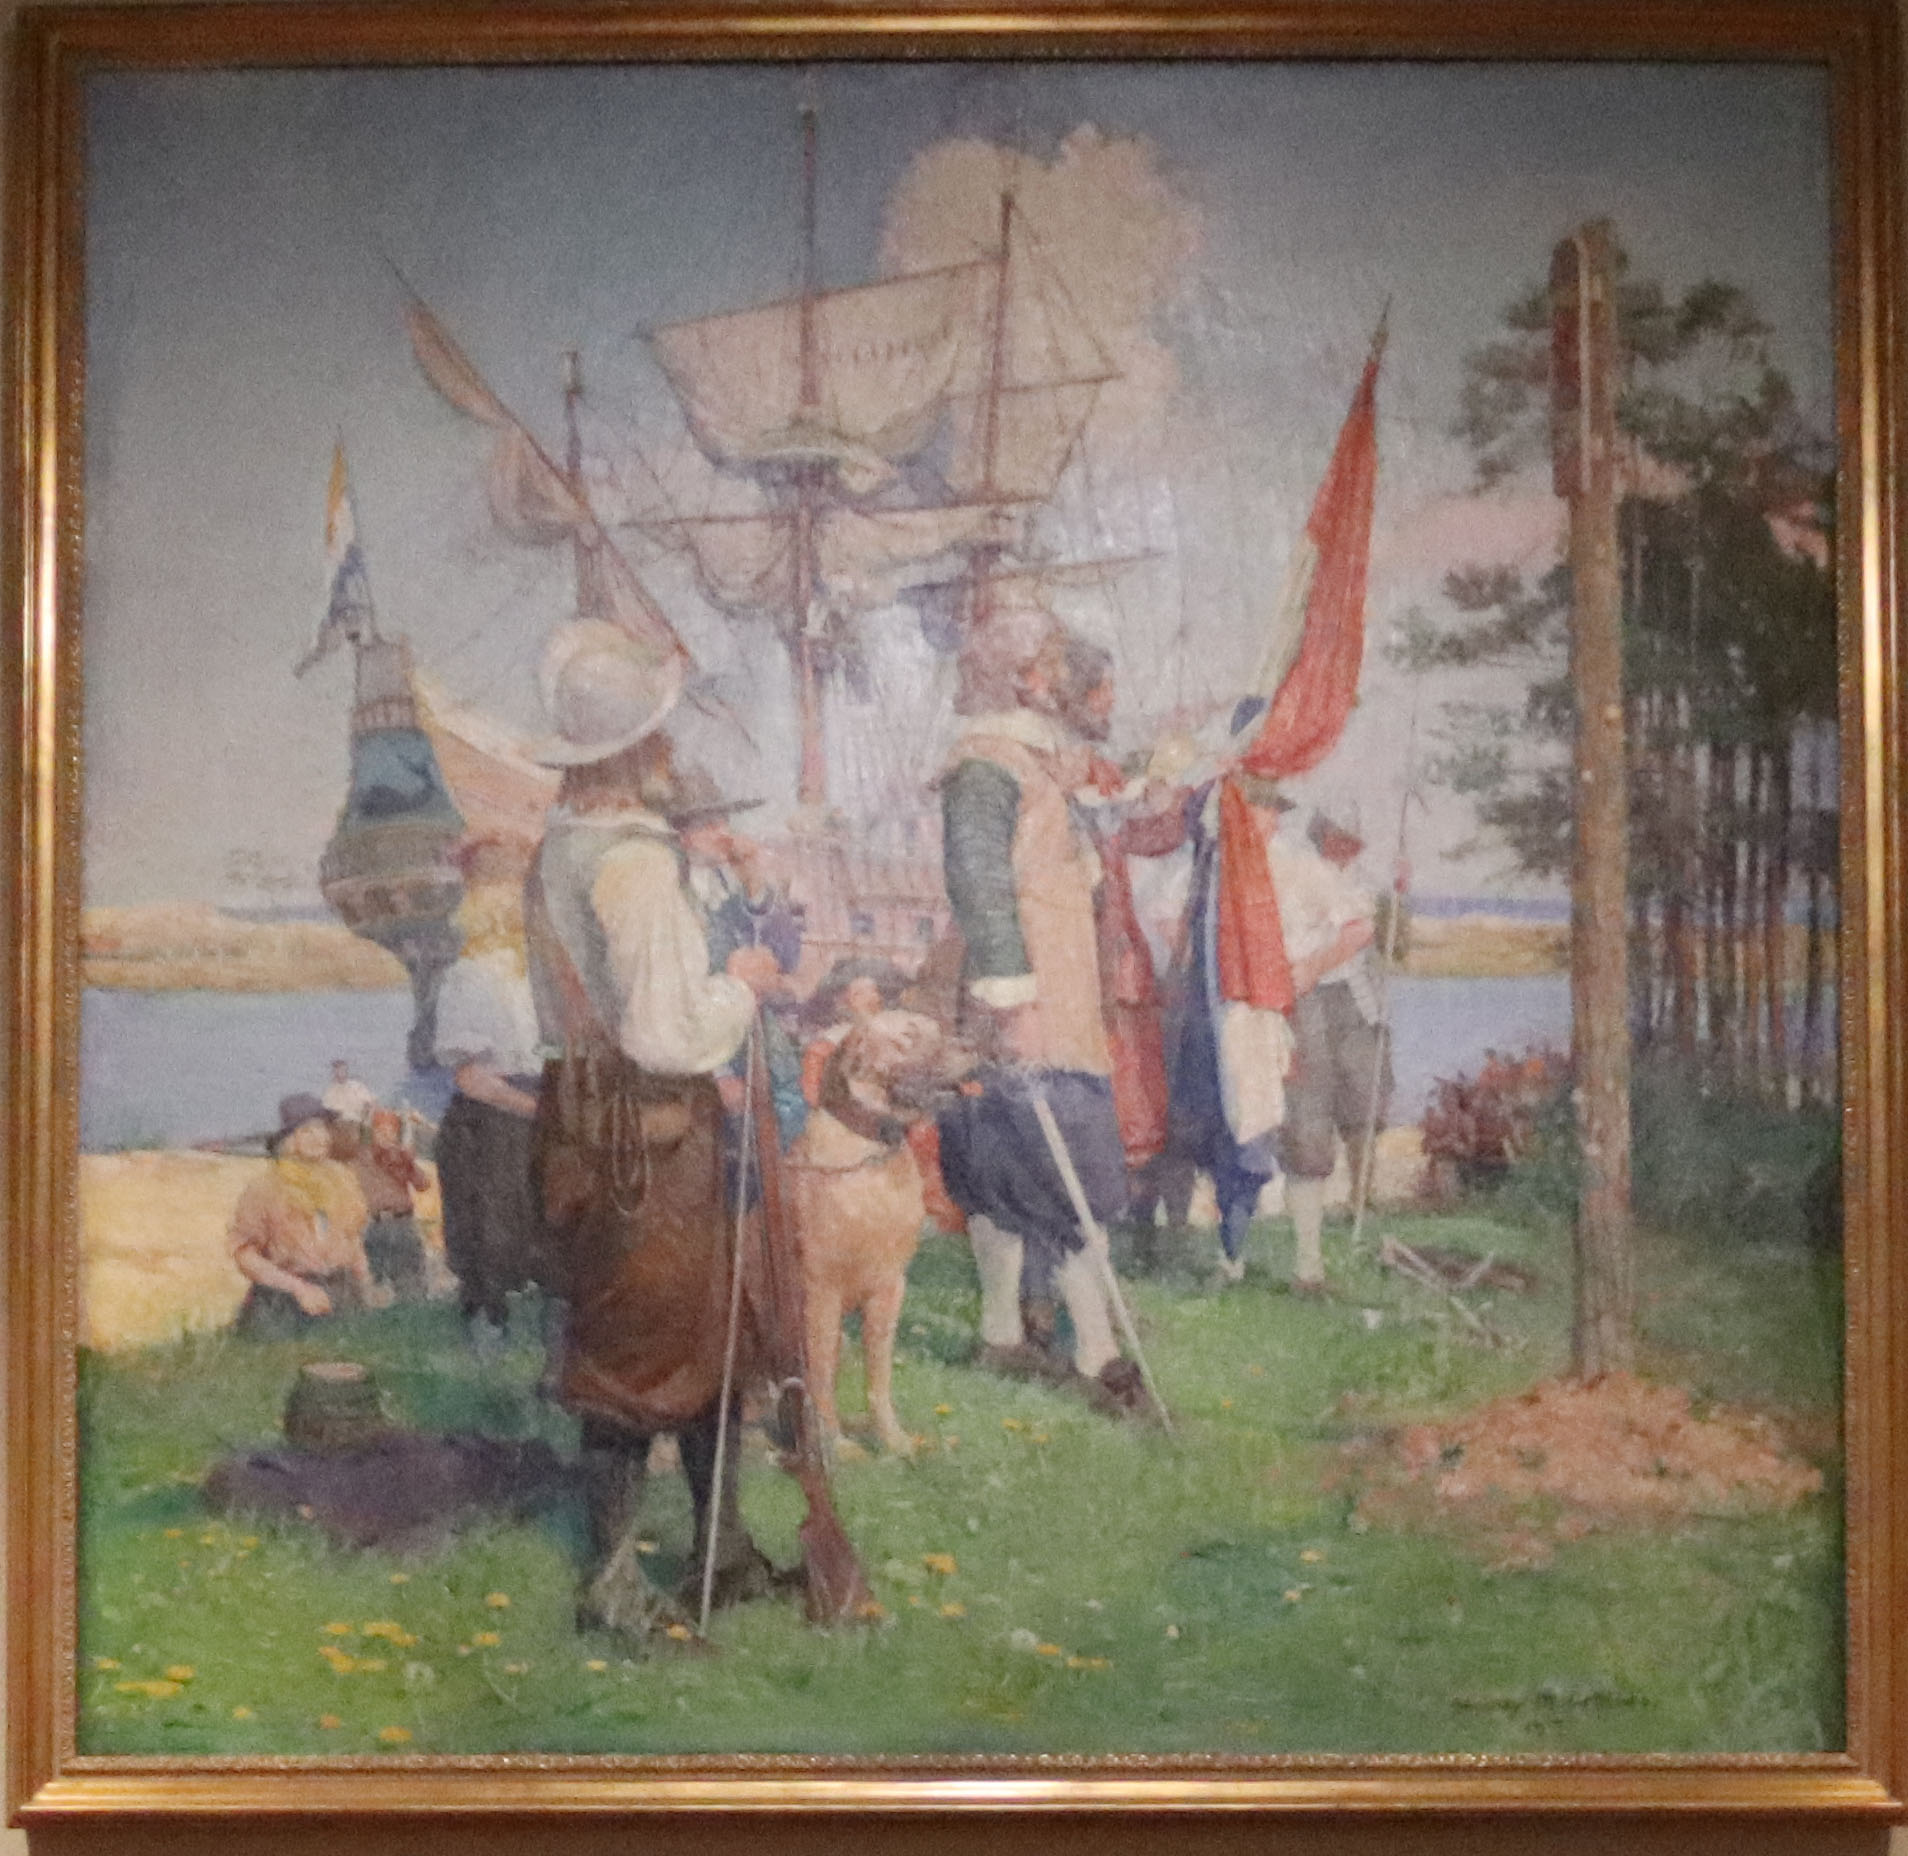 The Landing of the DeVries Colony at Swaanendael